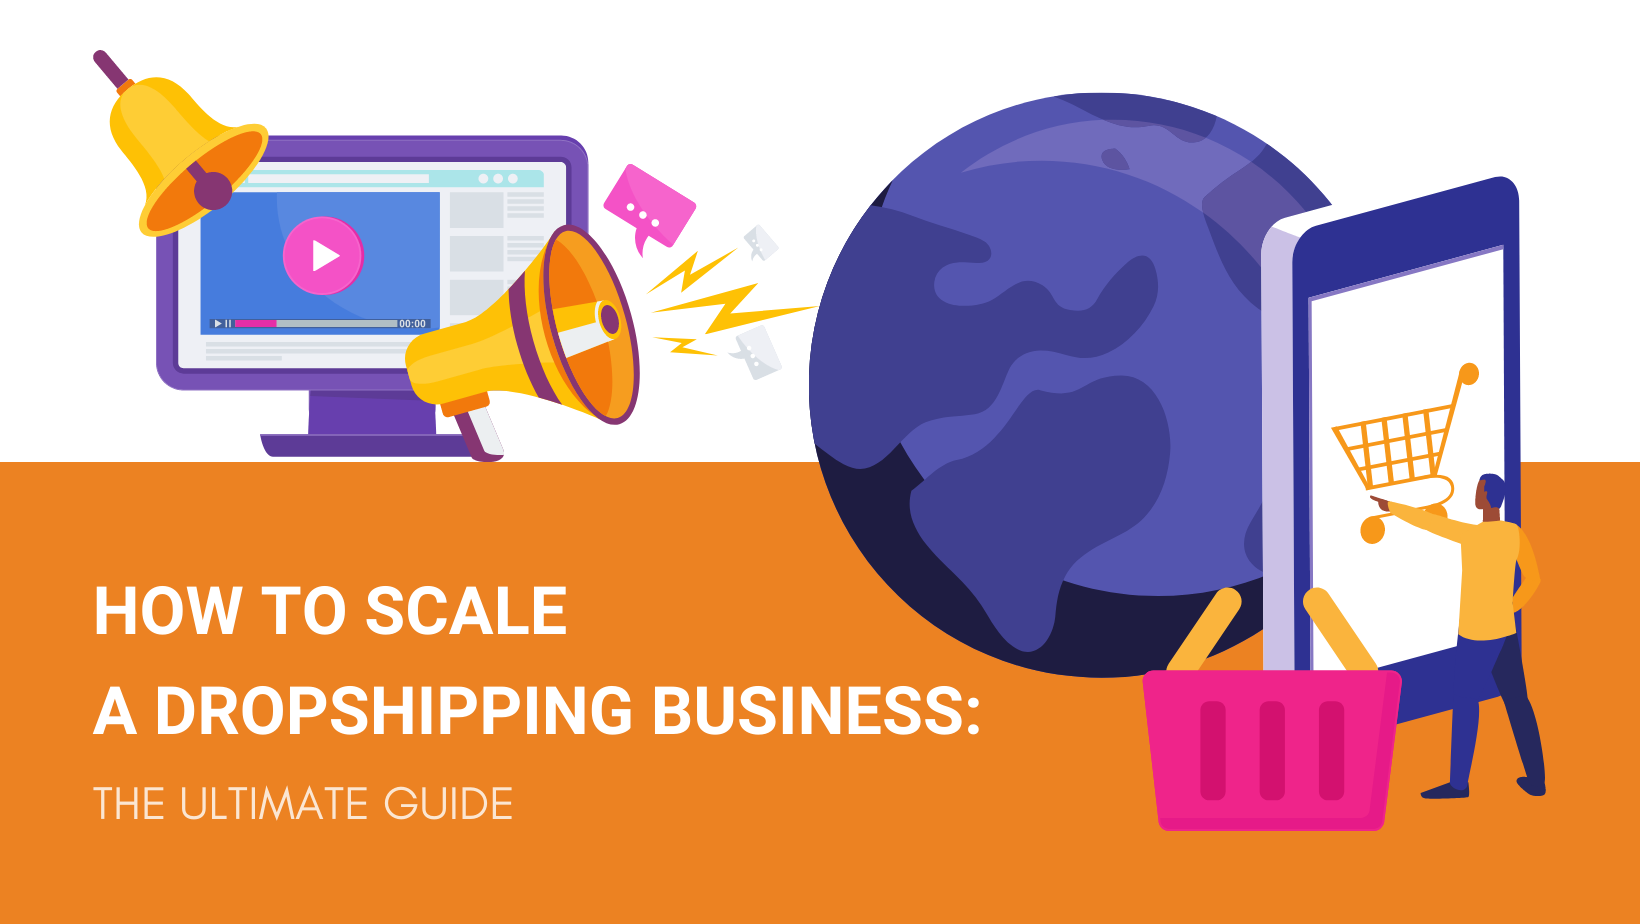 How to Scale a Dropshipping Business in 2021: The Ultimate Guide